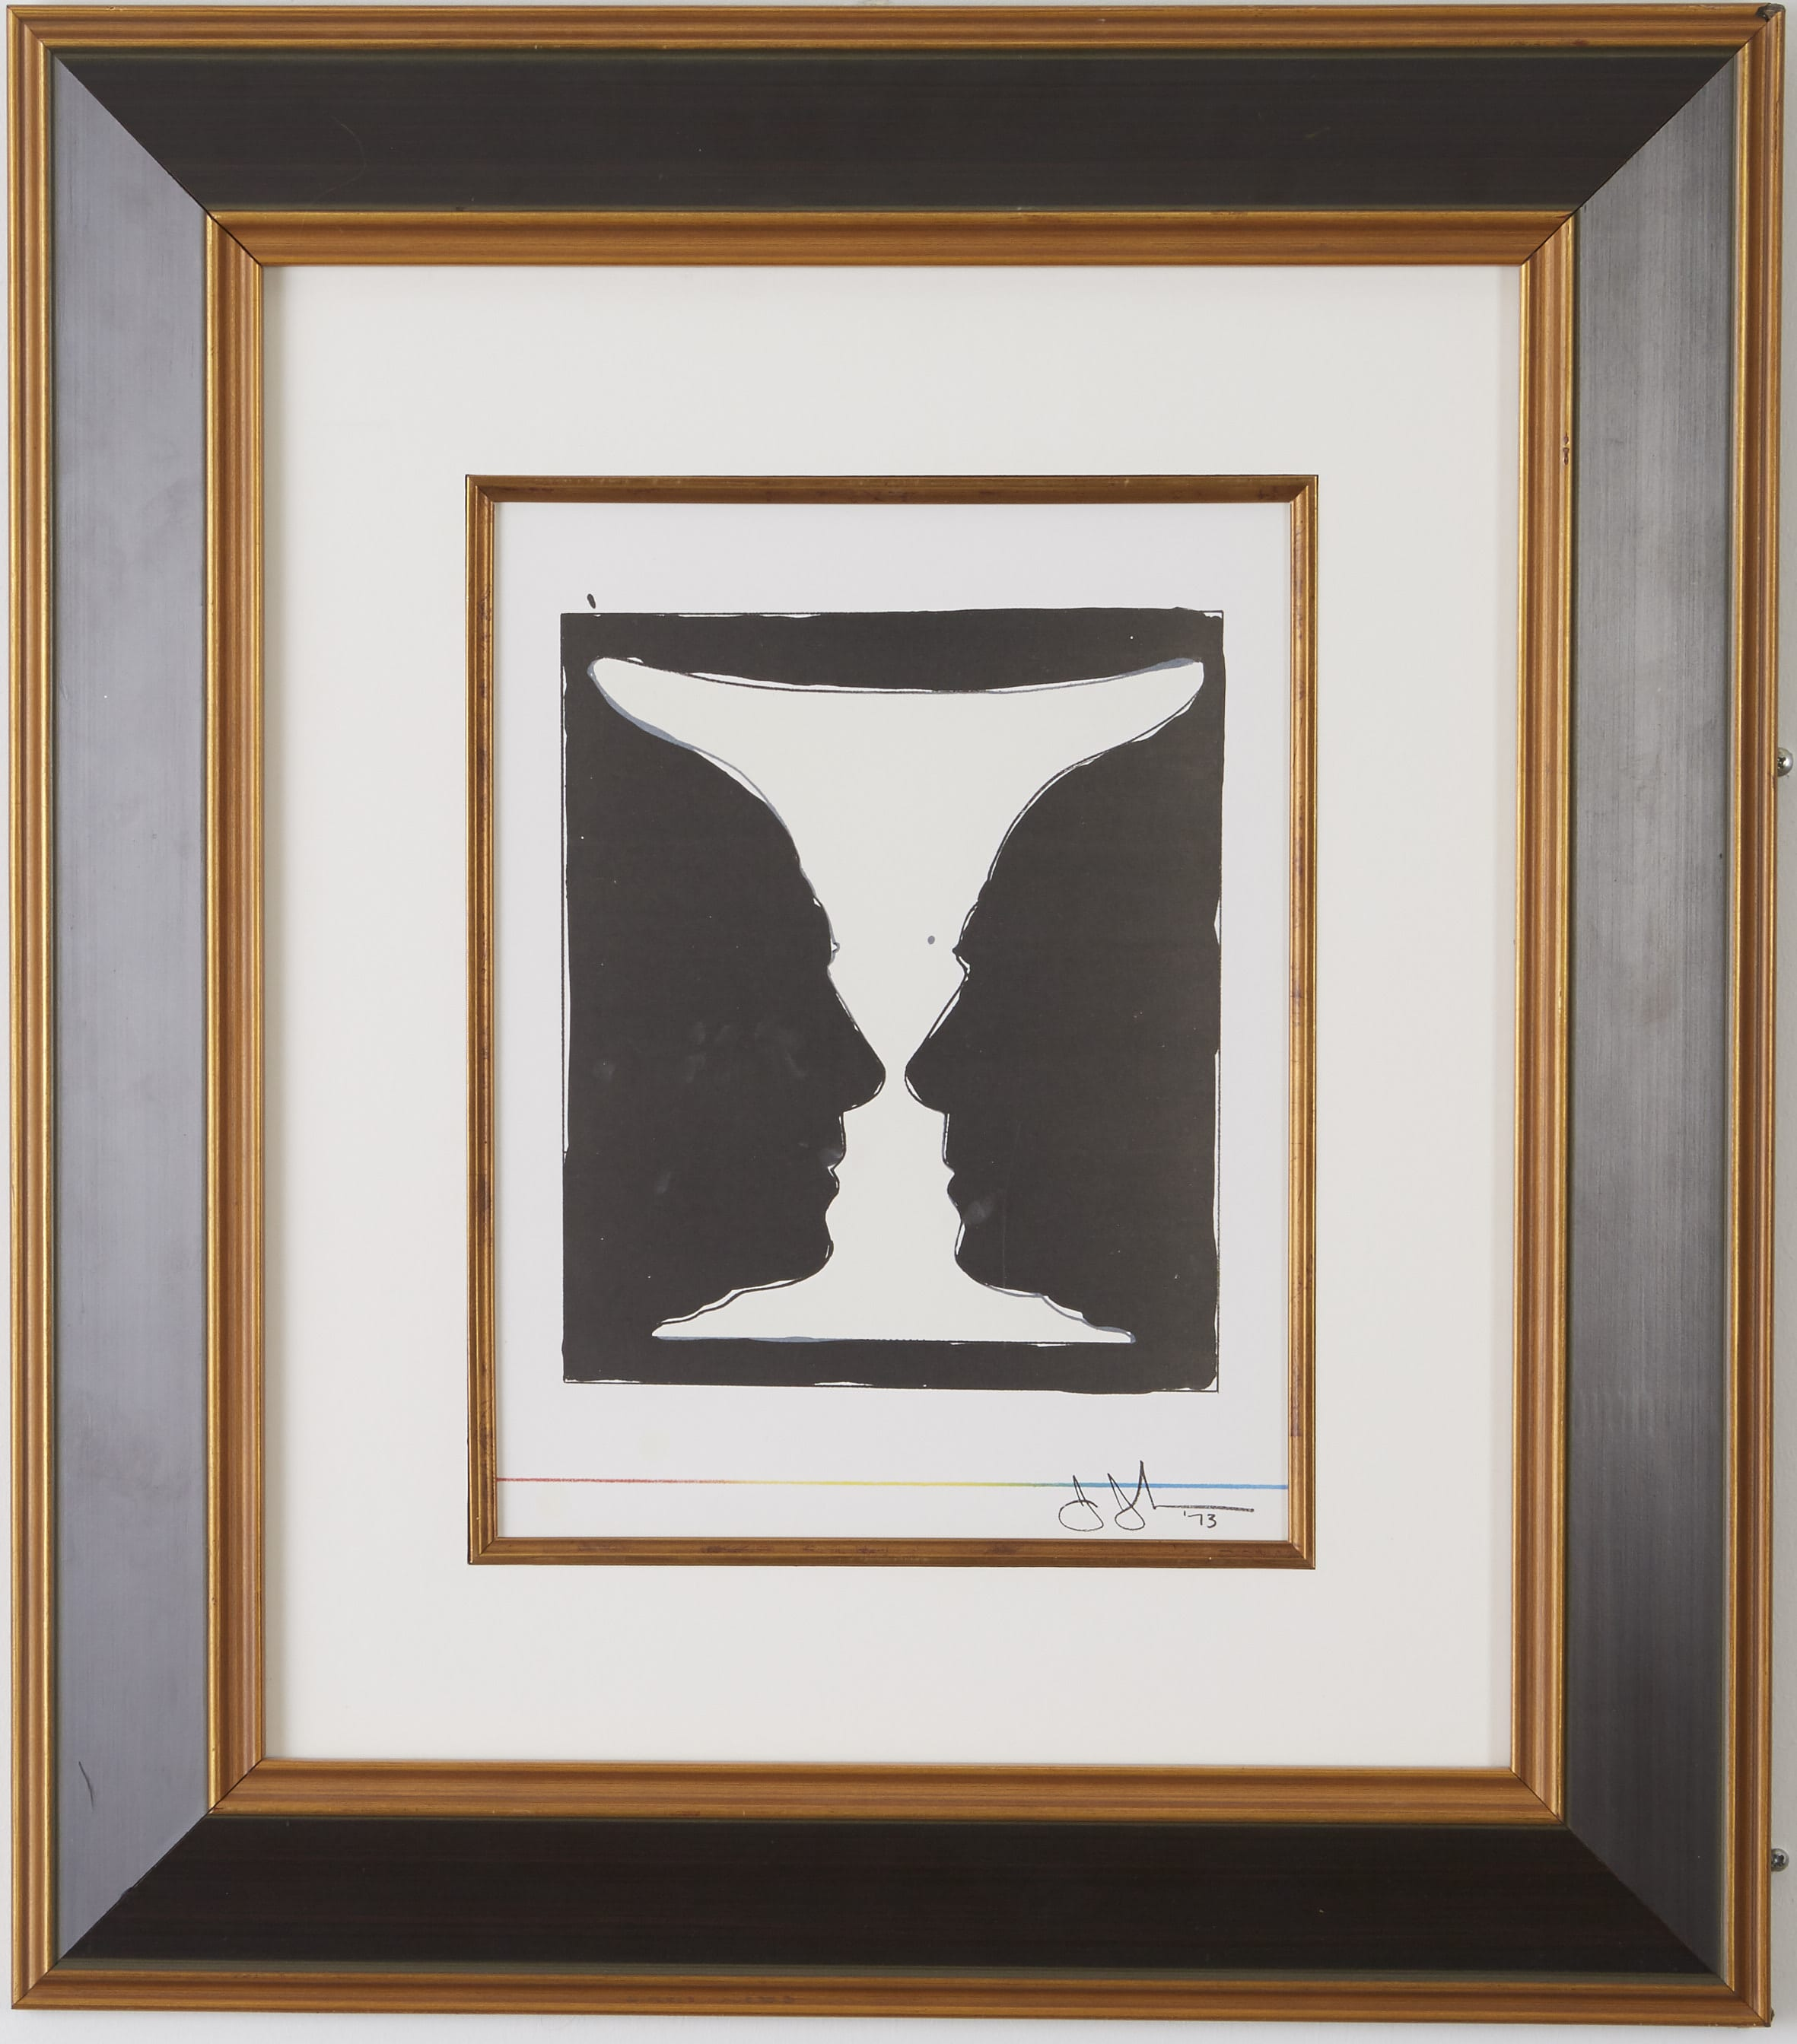 Lot 243: Jasper Johns Cup 2 Picasso Lithograph